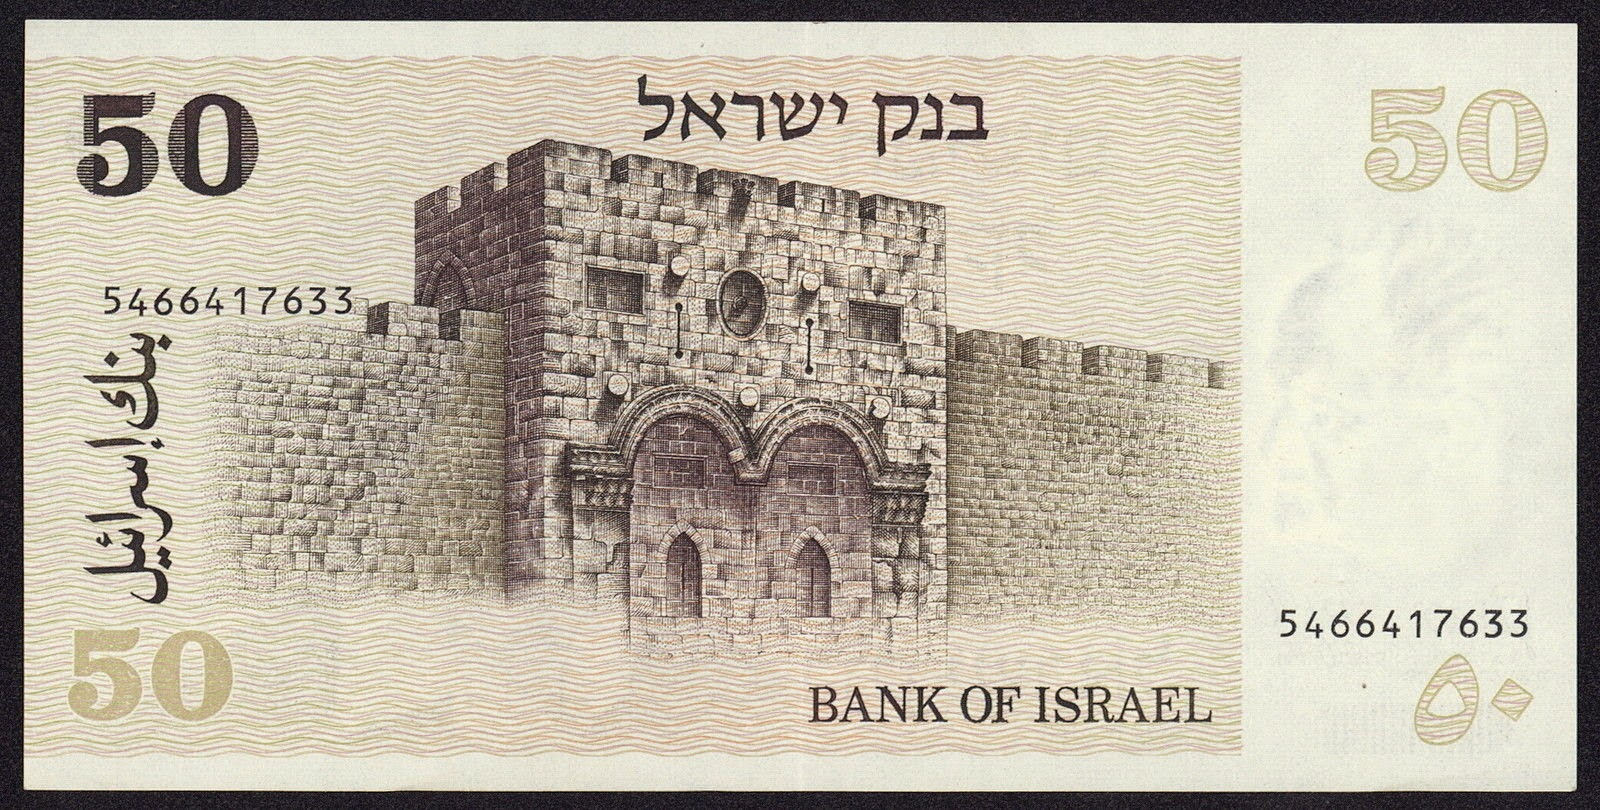 Israeli currency 50 Sheqalim banknote 1978 Golden Gate in the Old City of Jerusalem